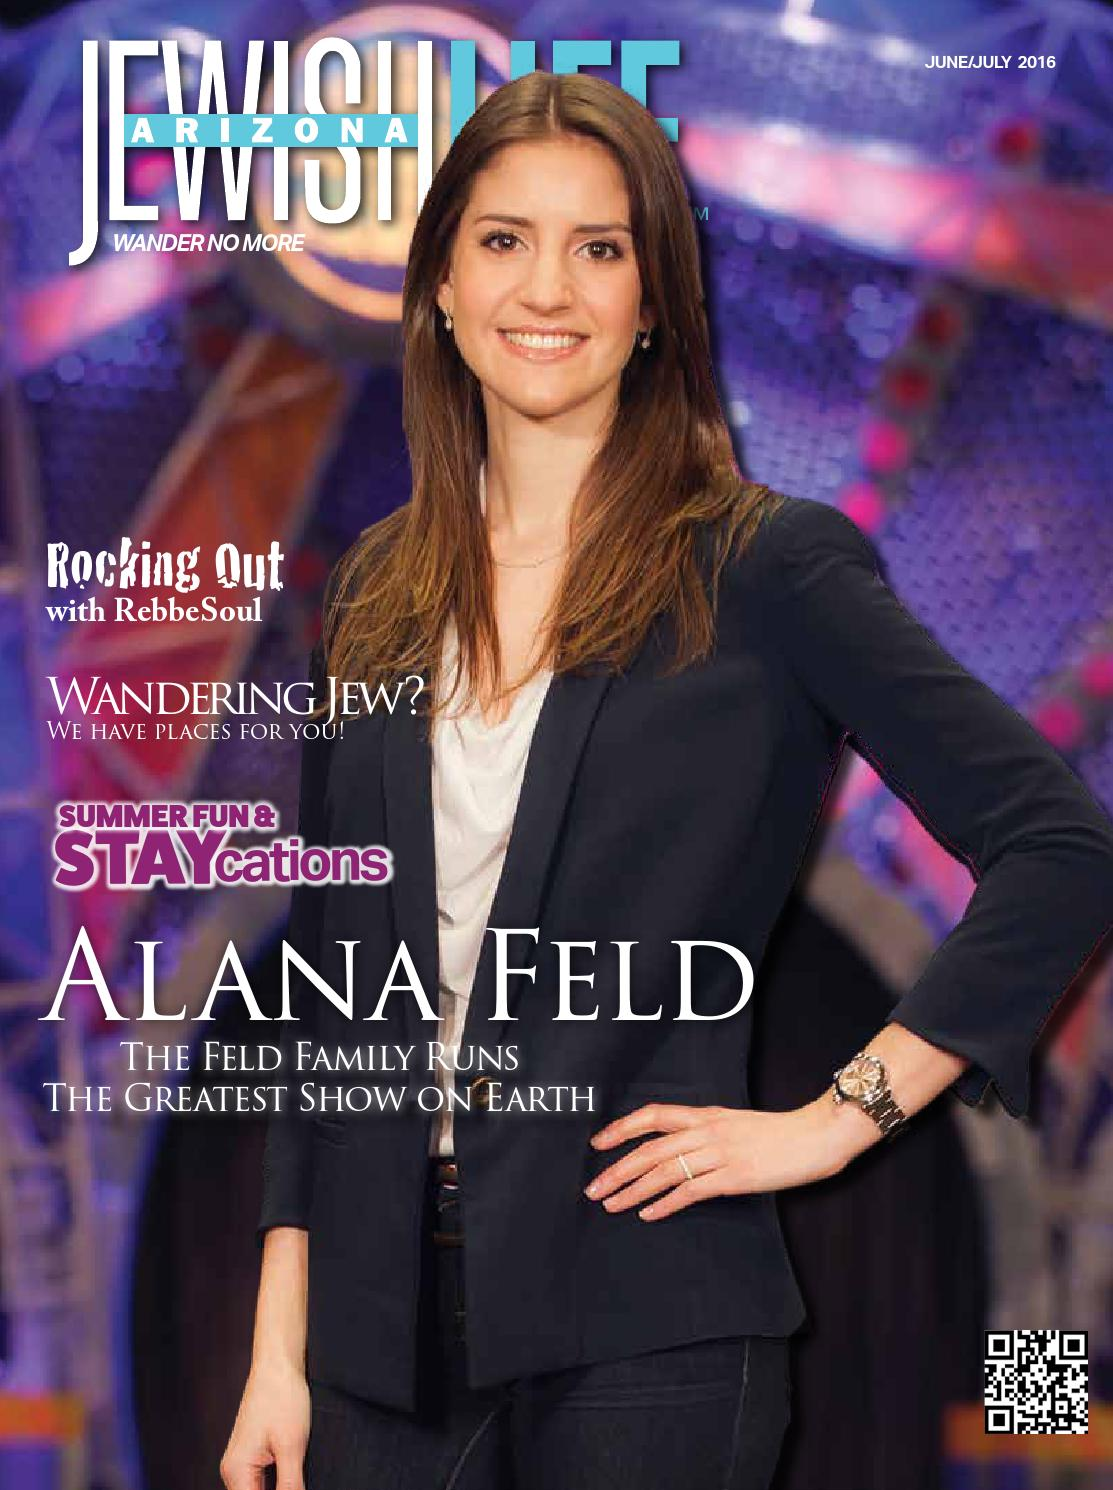 Arizona Jewish Life June 2016 Vol. 4 / Issue 9 by JewishLifeMagazine - issuu